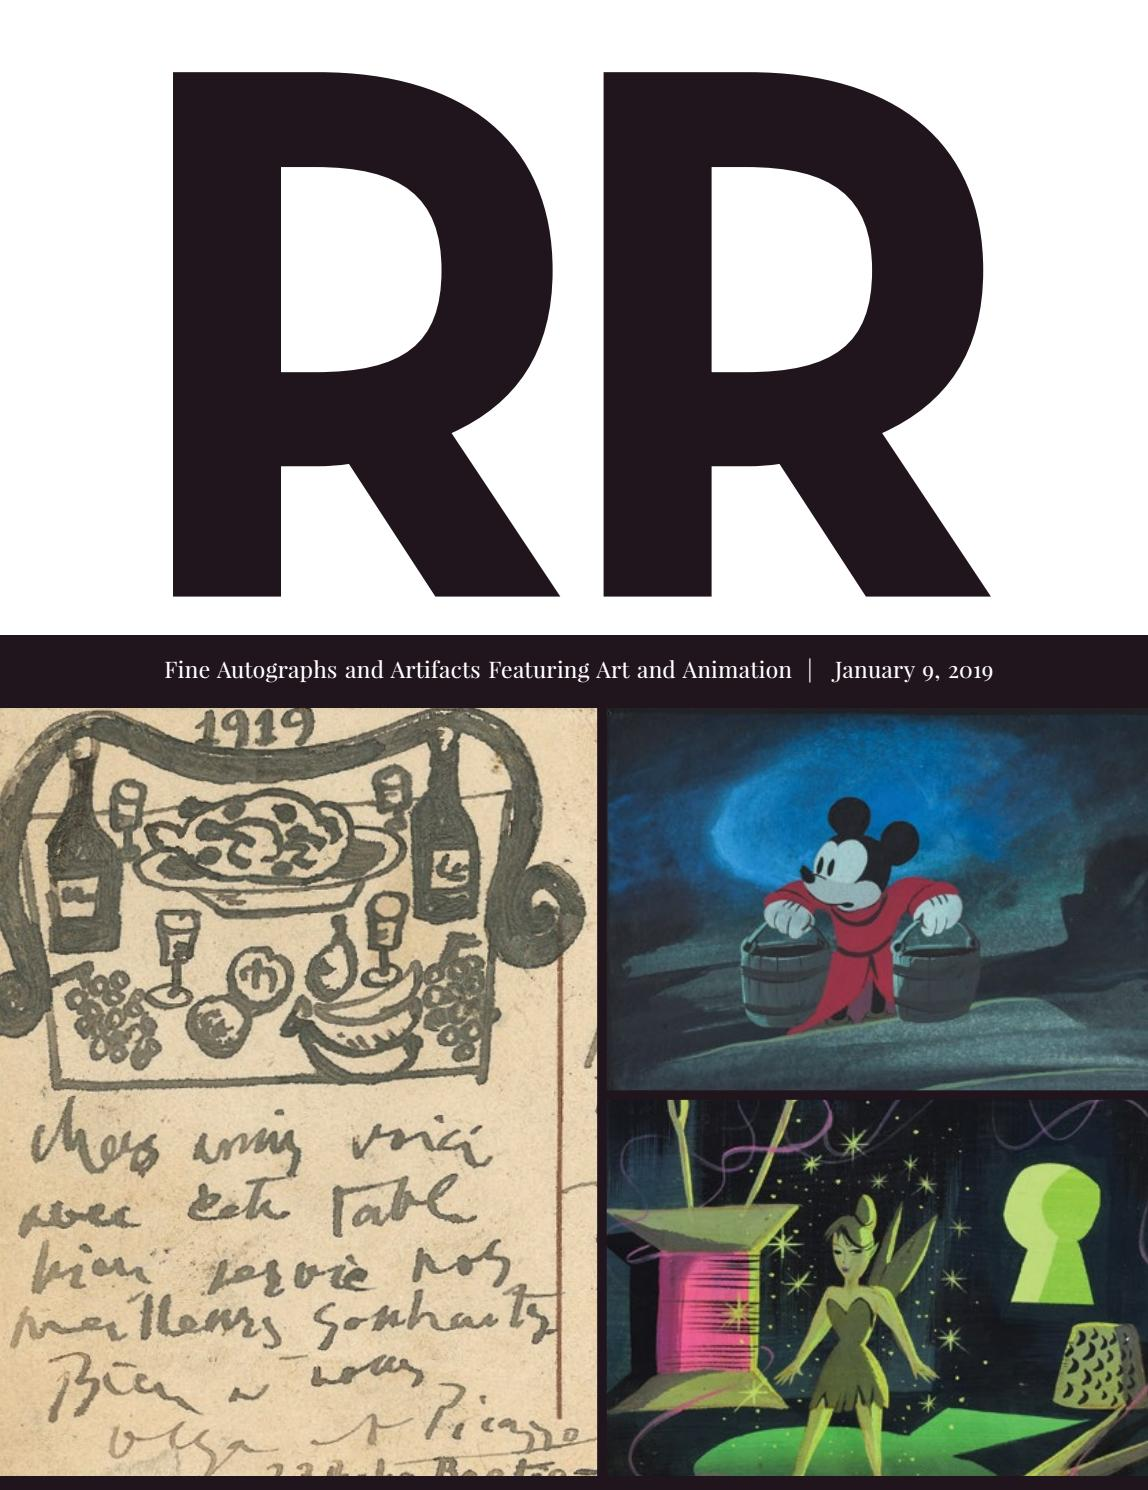 a1cebf9fb461 RR Auction  Fine Autographs and Autographs Featuring Art and Animation by  RR Auction - issuu